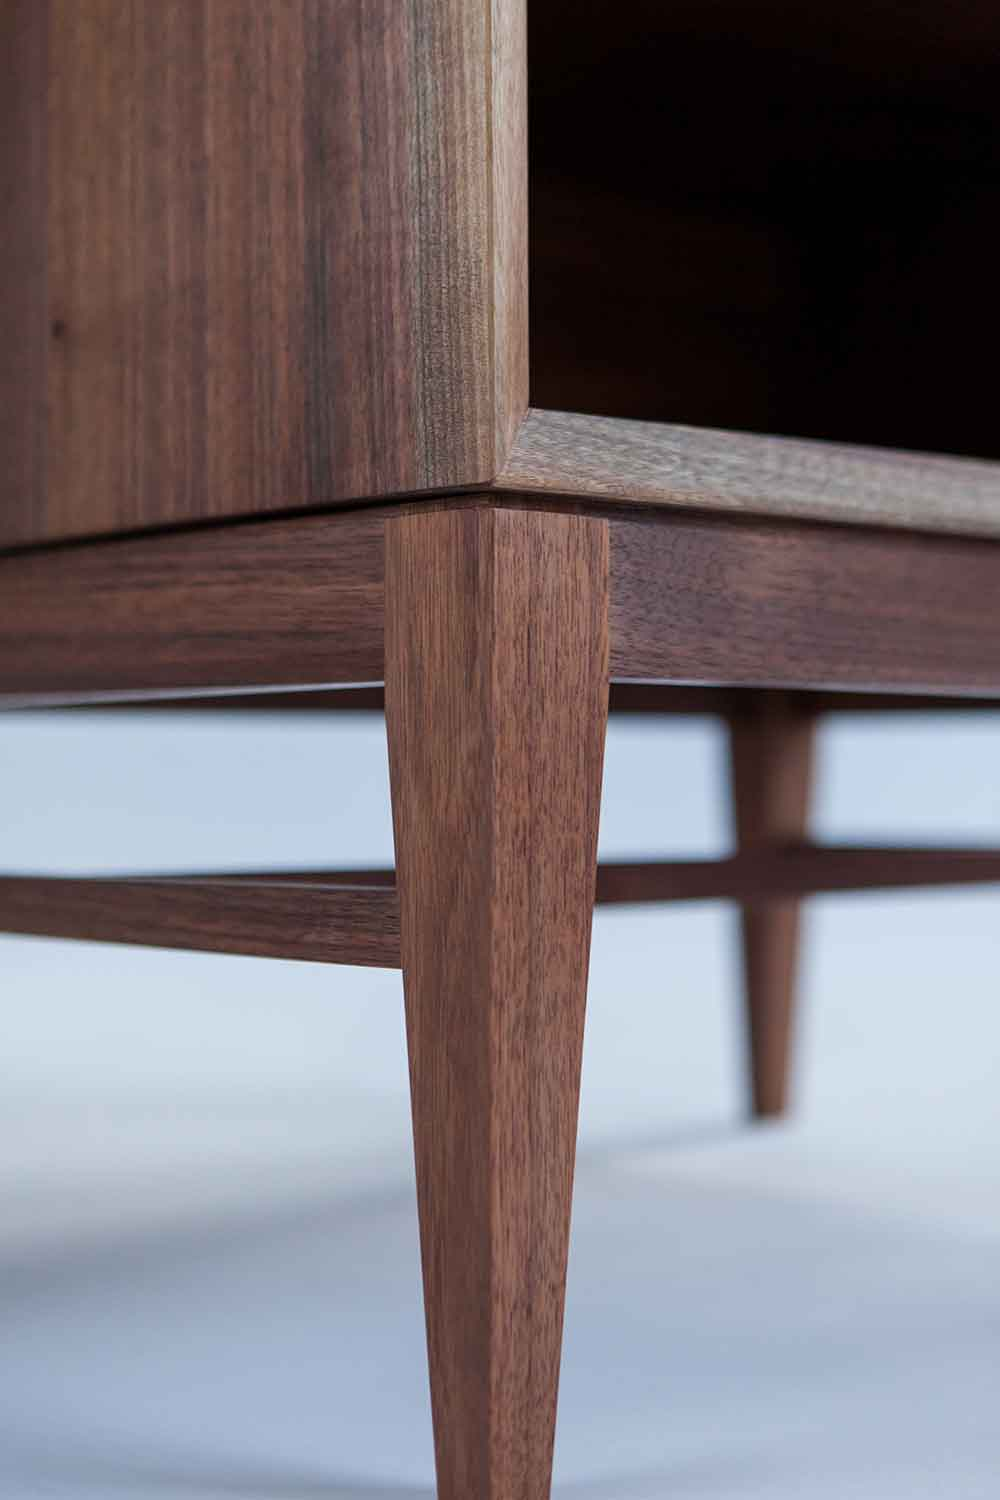 wickham_quartersawn_walnut_nightstand4_tom_moore_photo.jpg